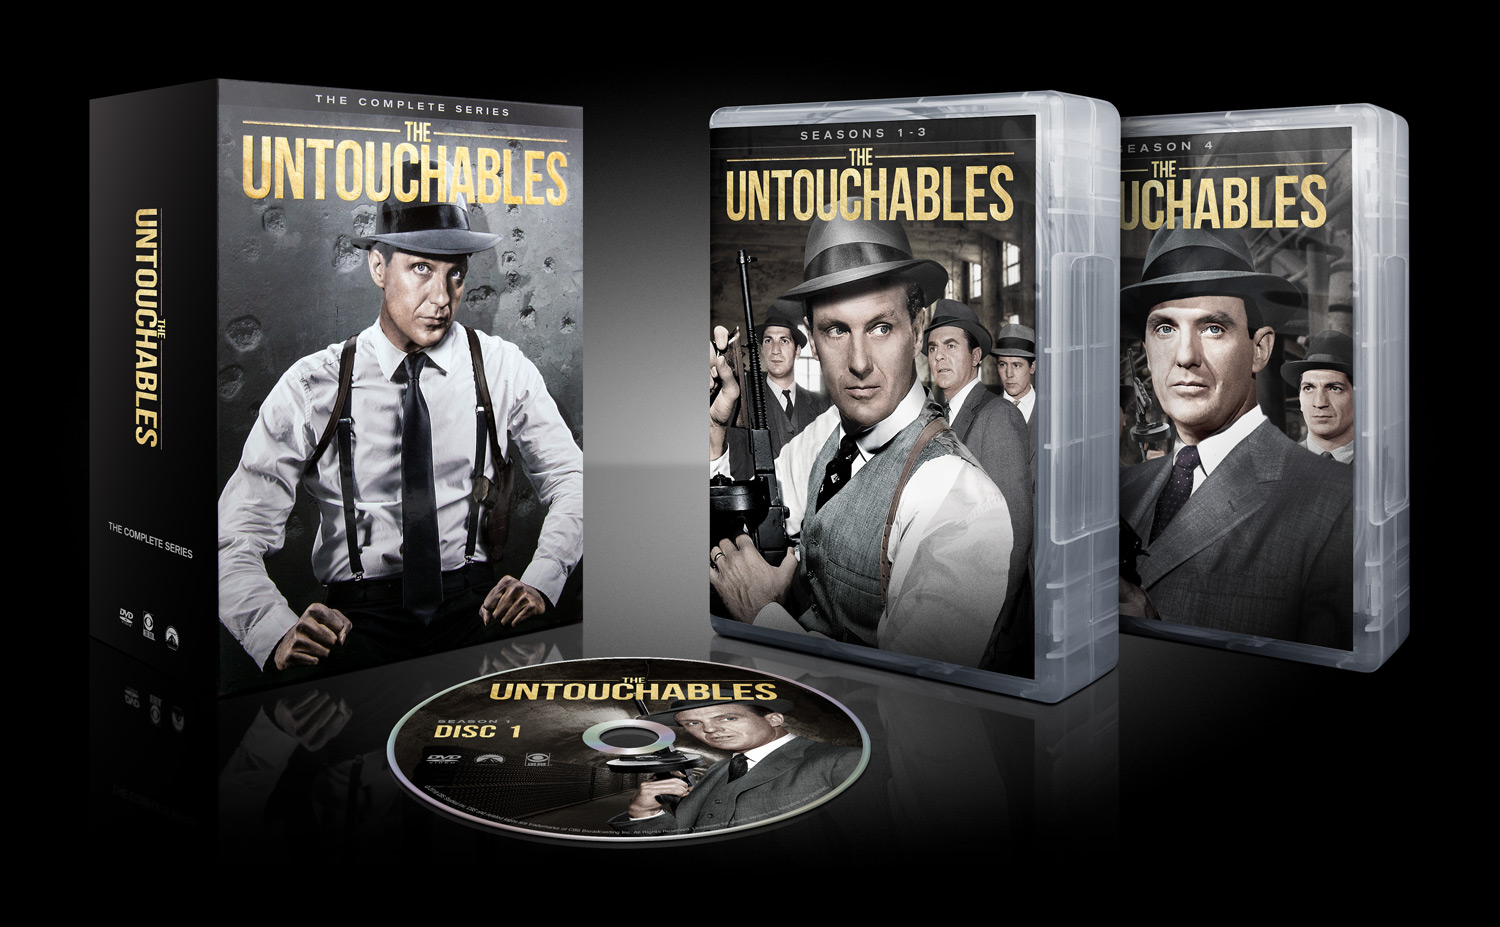 Untouchables_Packaging_01.jpg